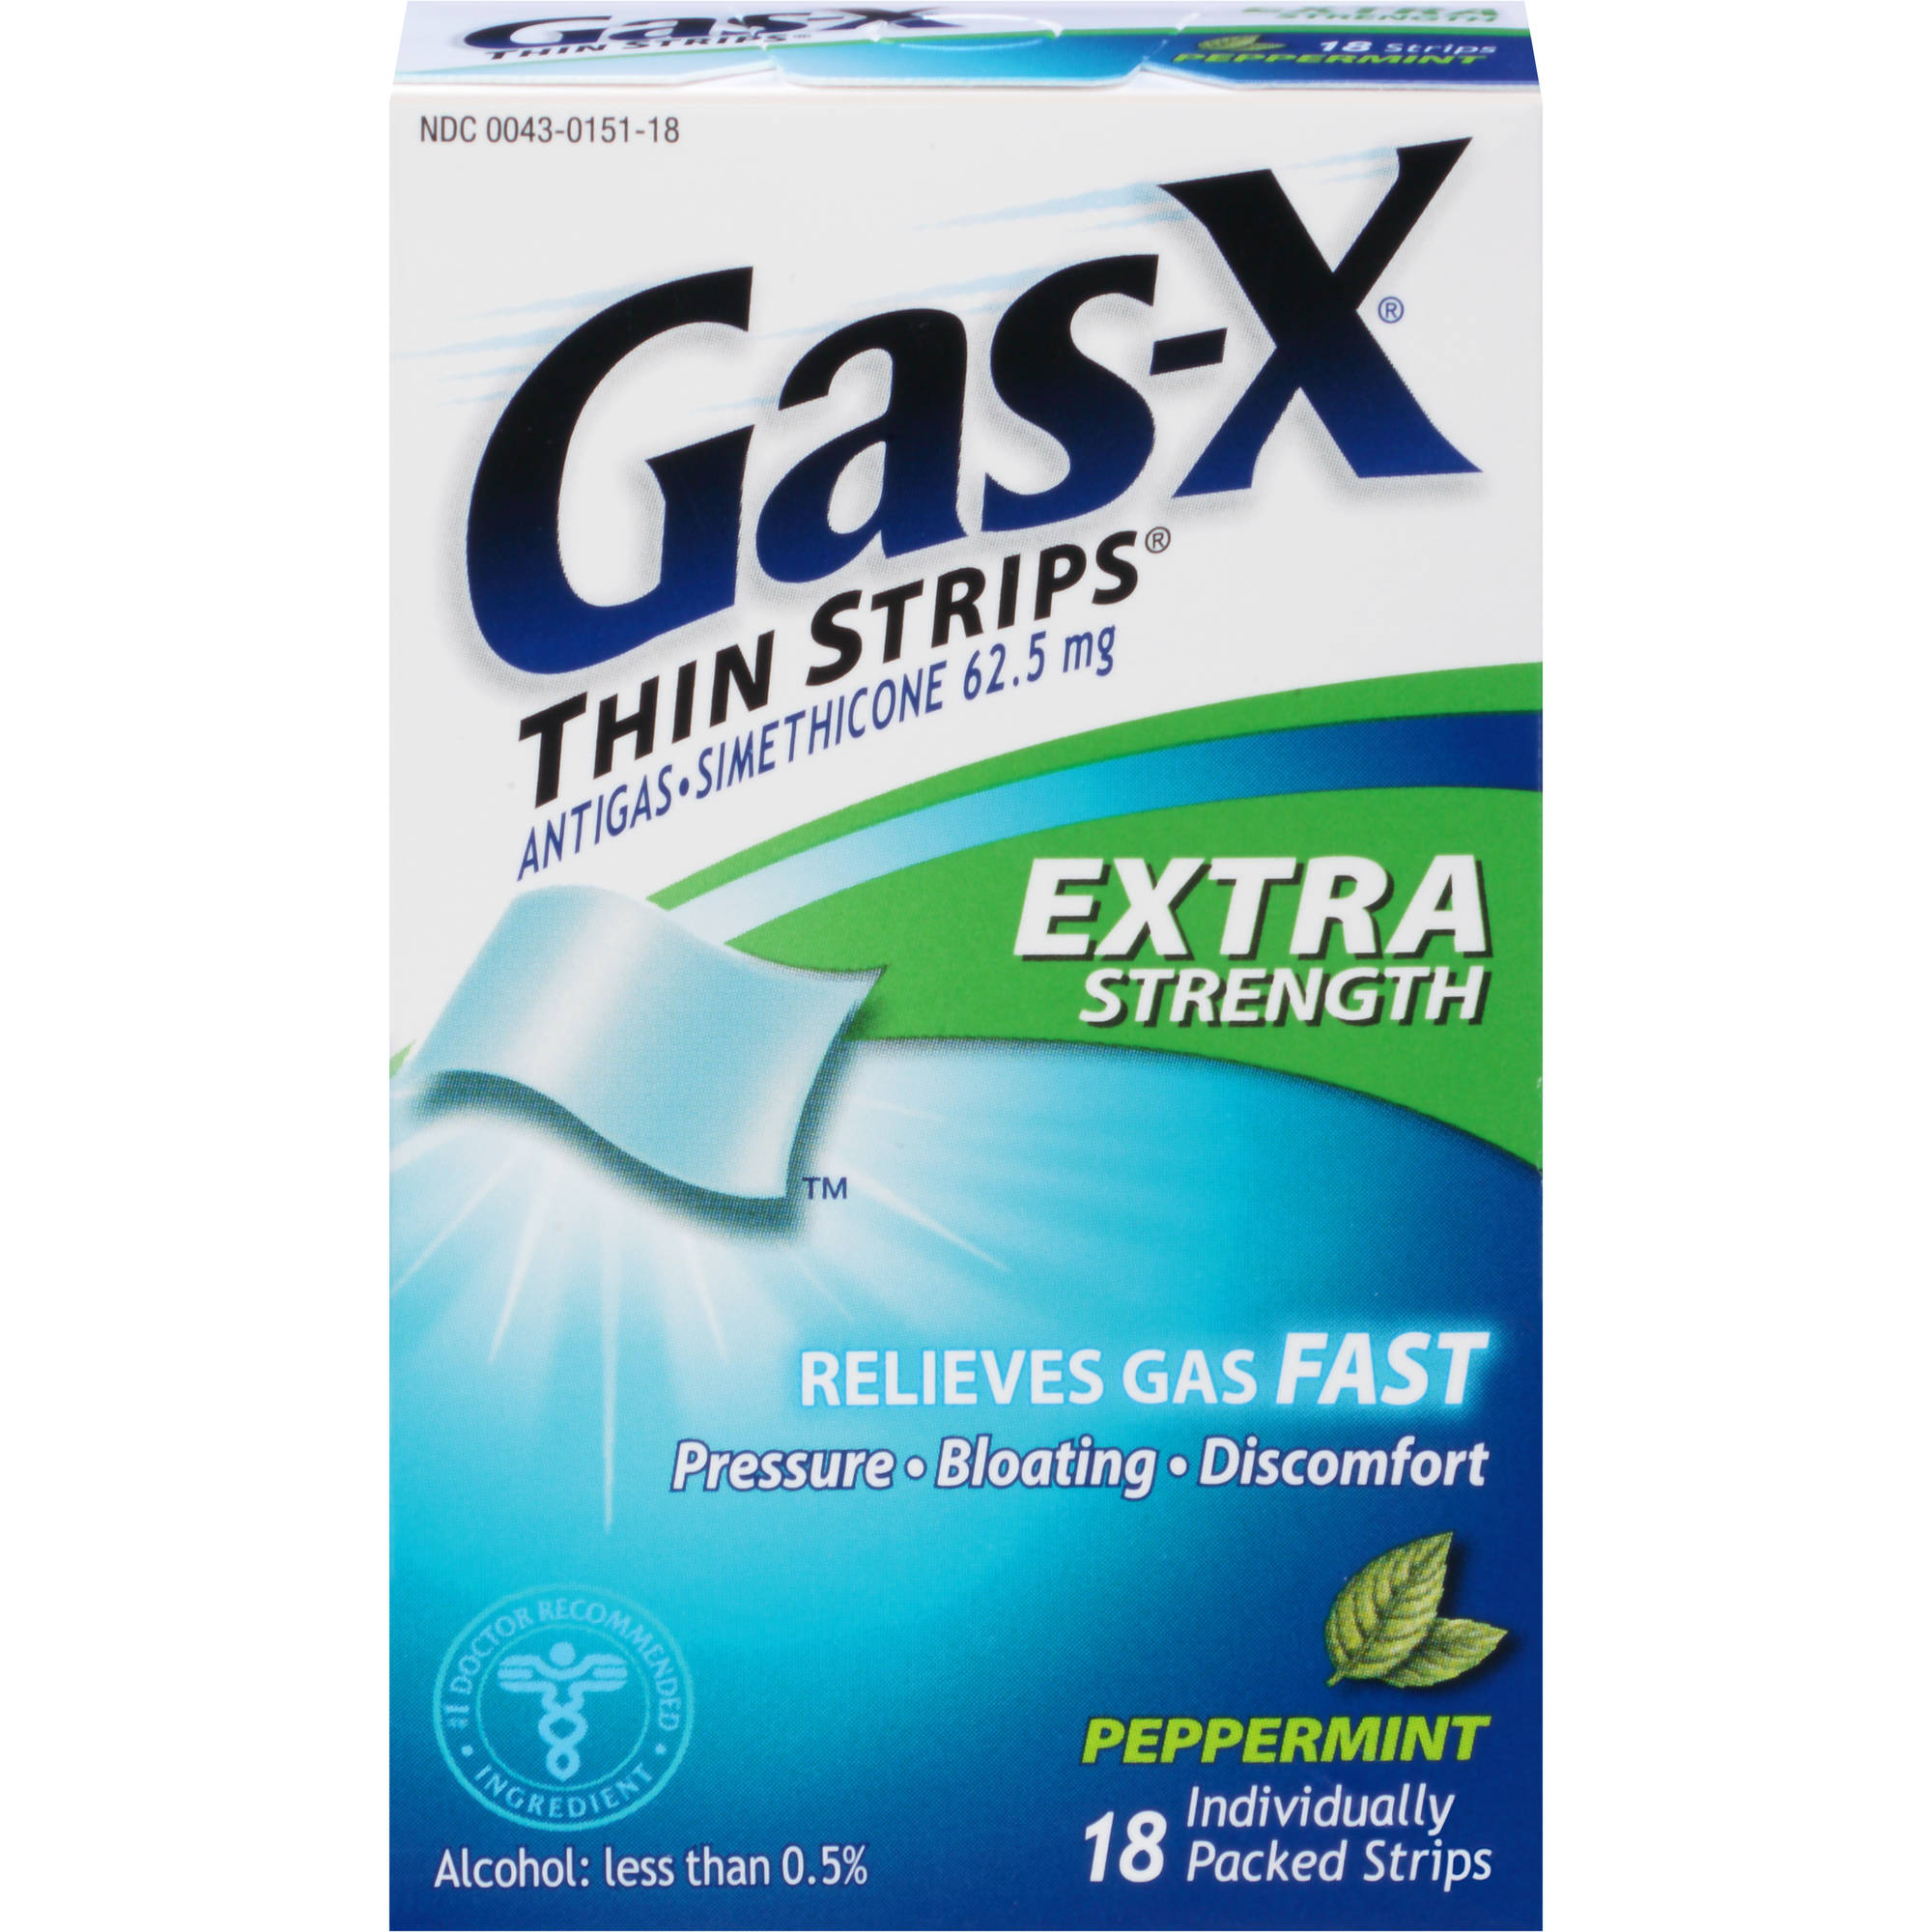 Gas-X Gas Relief Aid Antigas Simethicone Thin Strips, Extra Strength, 62.5mg, Peppermint 18 Strips